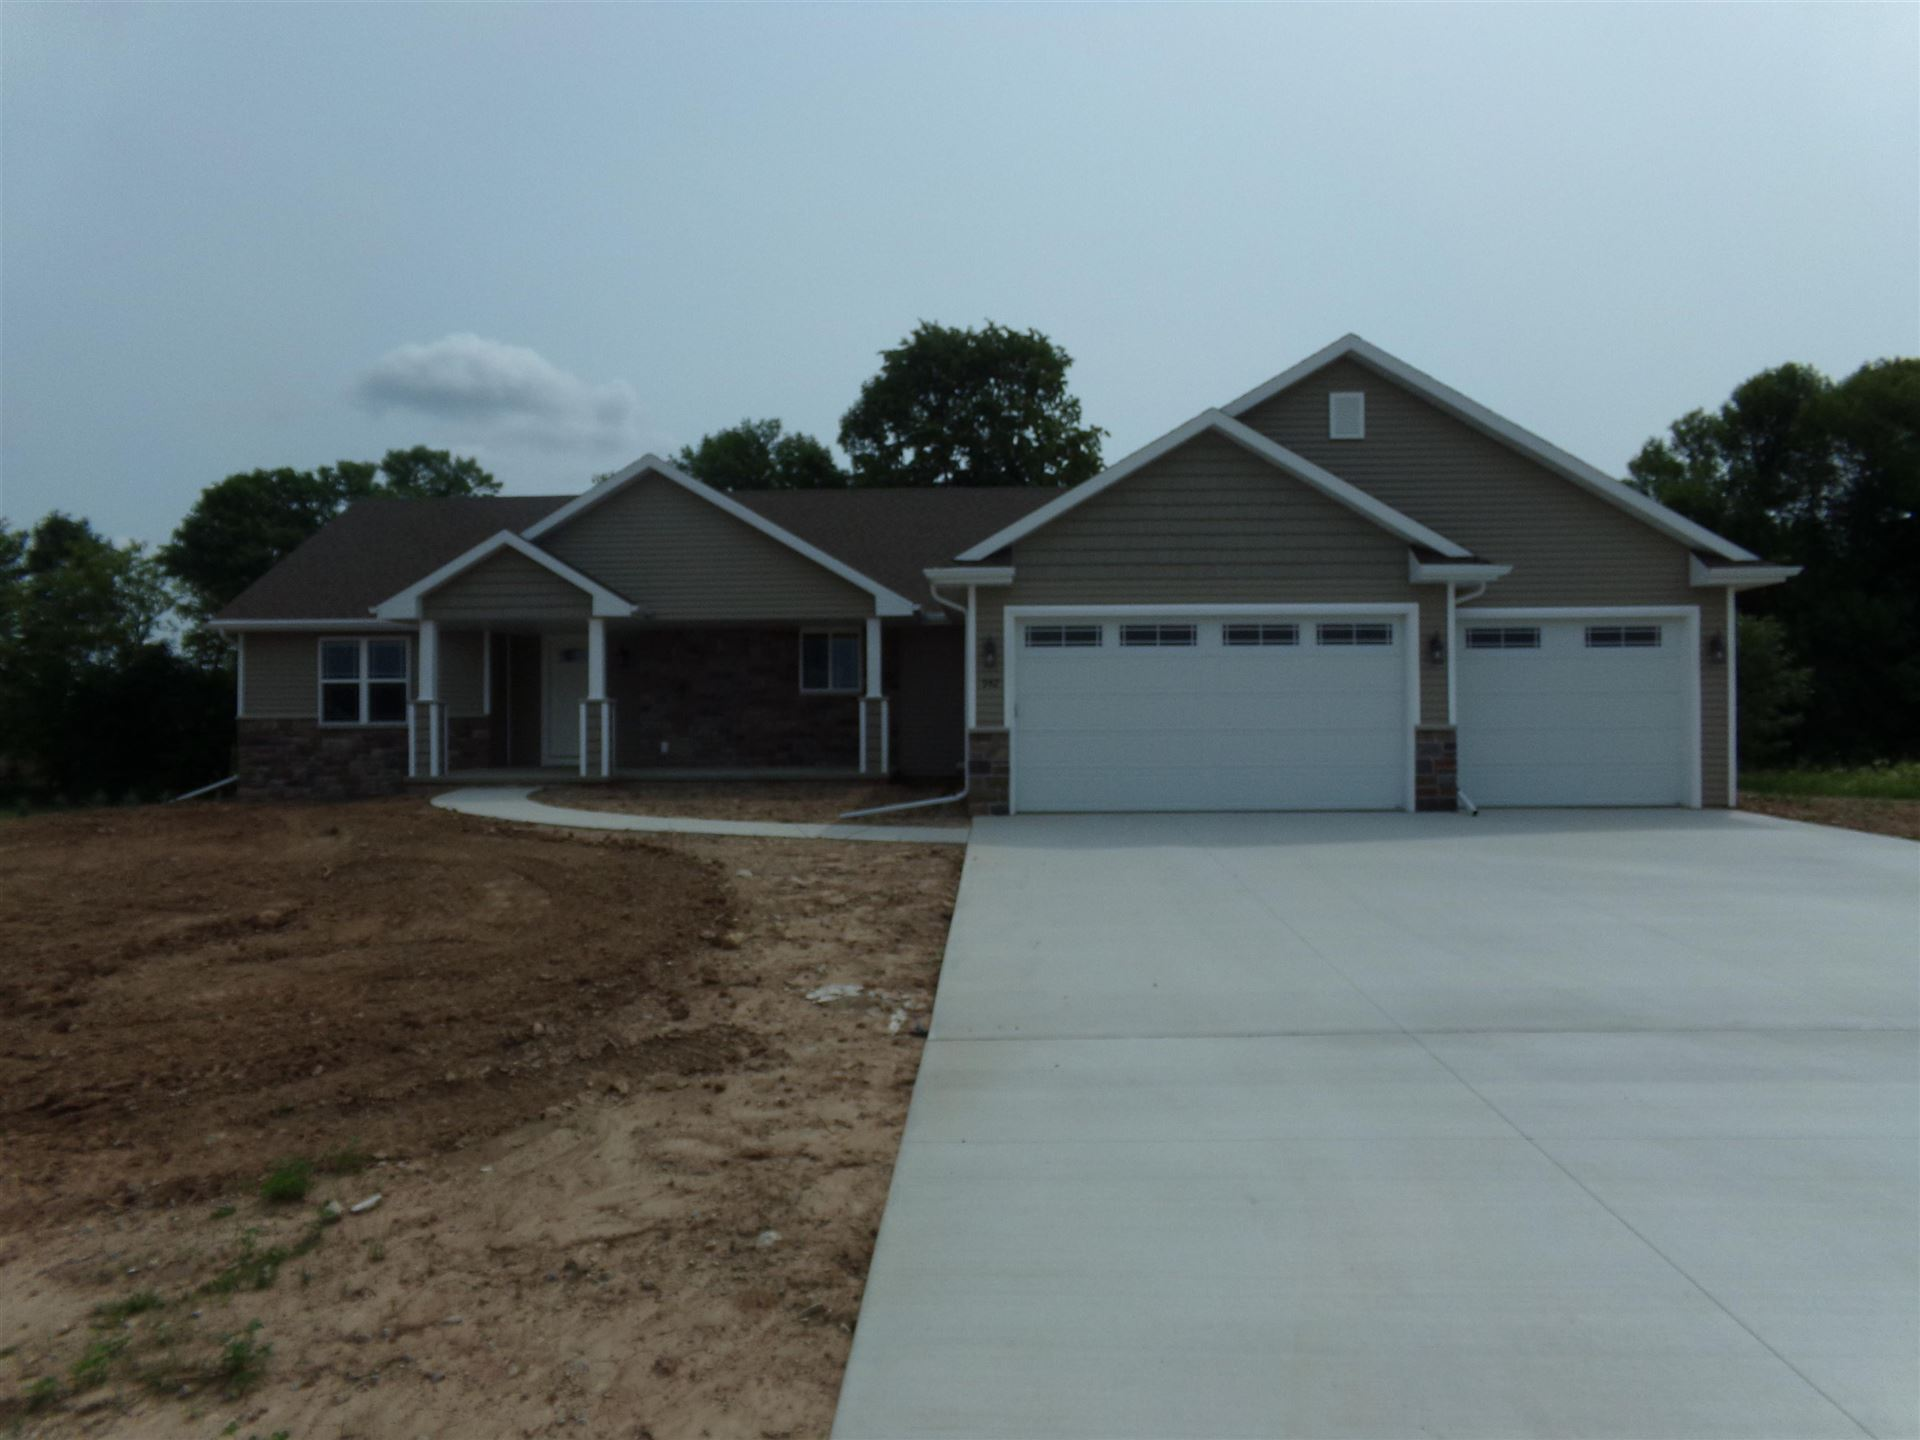 Photo of 3359 E RUBY RED Drive, APPLETON, WI 54913 (MLS # 50247853)